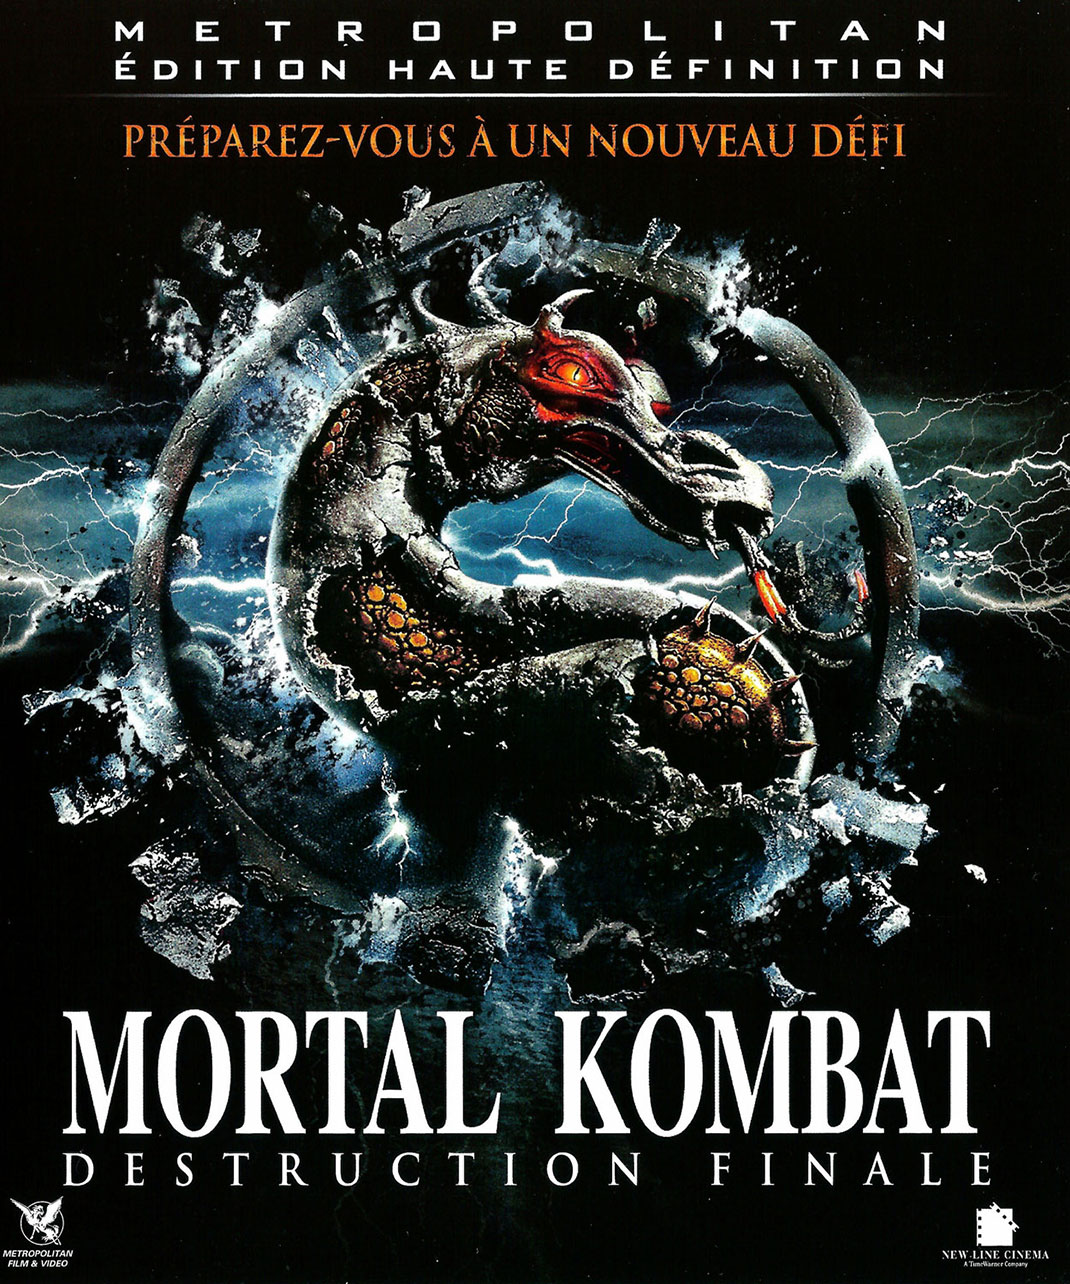 Mortal-Kombat-2-film